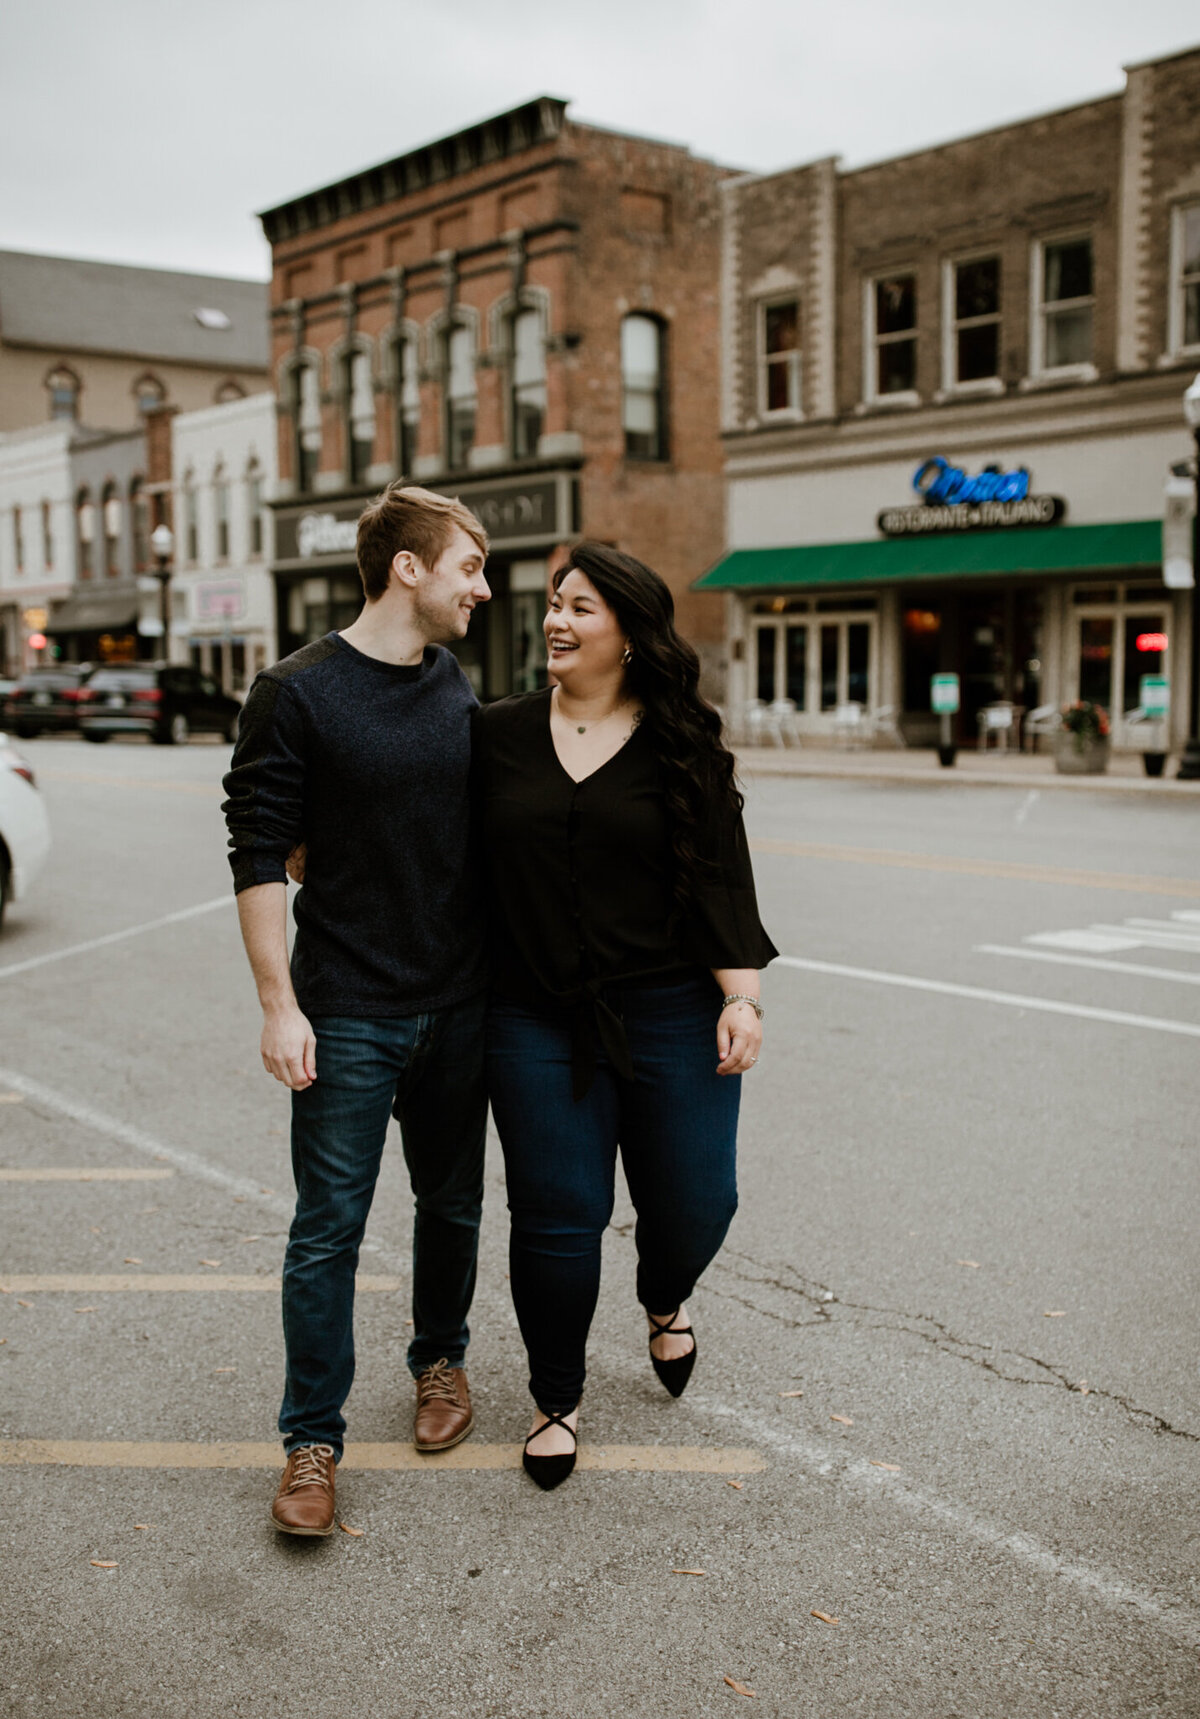 meg-thompson-photography-noblesville-indiana-engagement-session-brie-tom-15